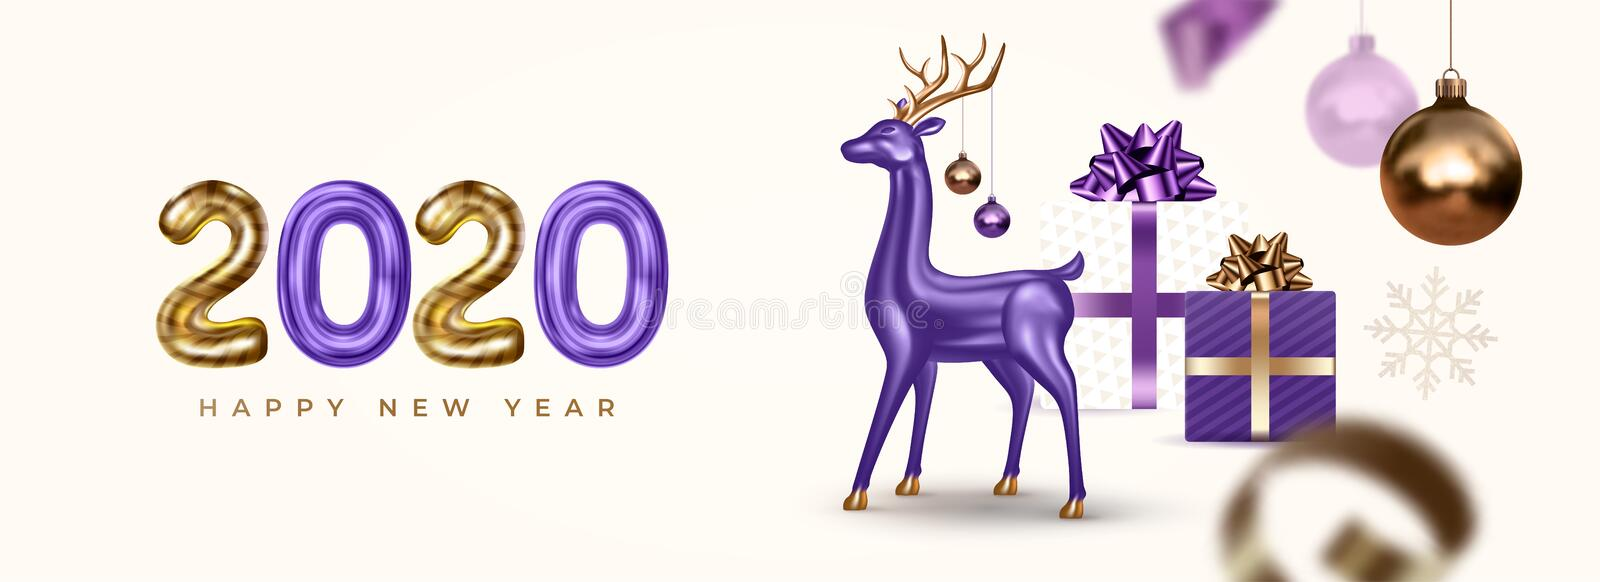 Happy New Year and Merry Christmas. Festive banner with realistic 3d glass deer, Xmas balls and gifts. stock photos